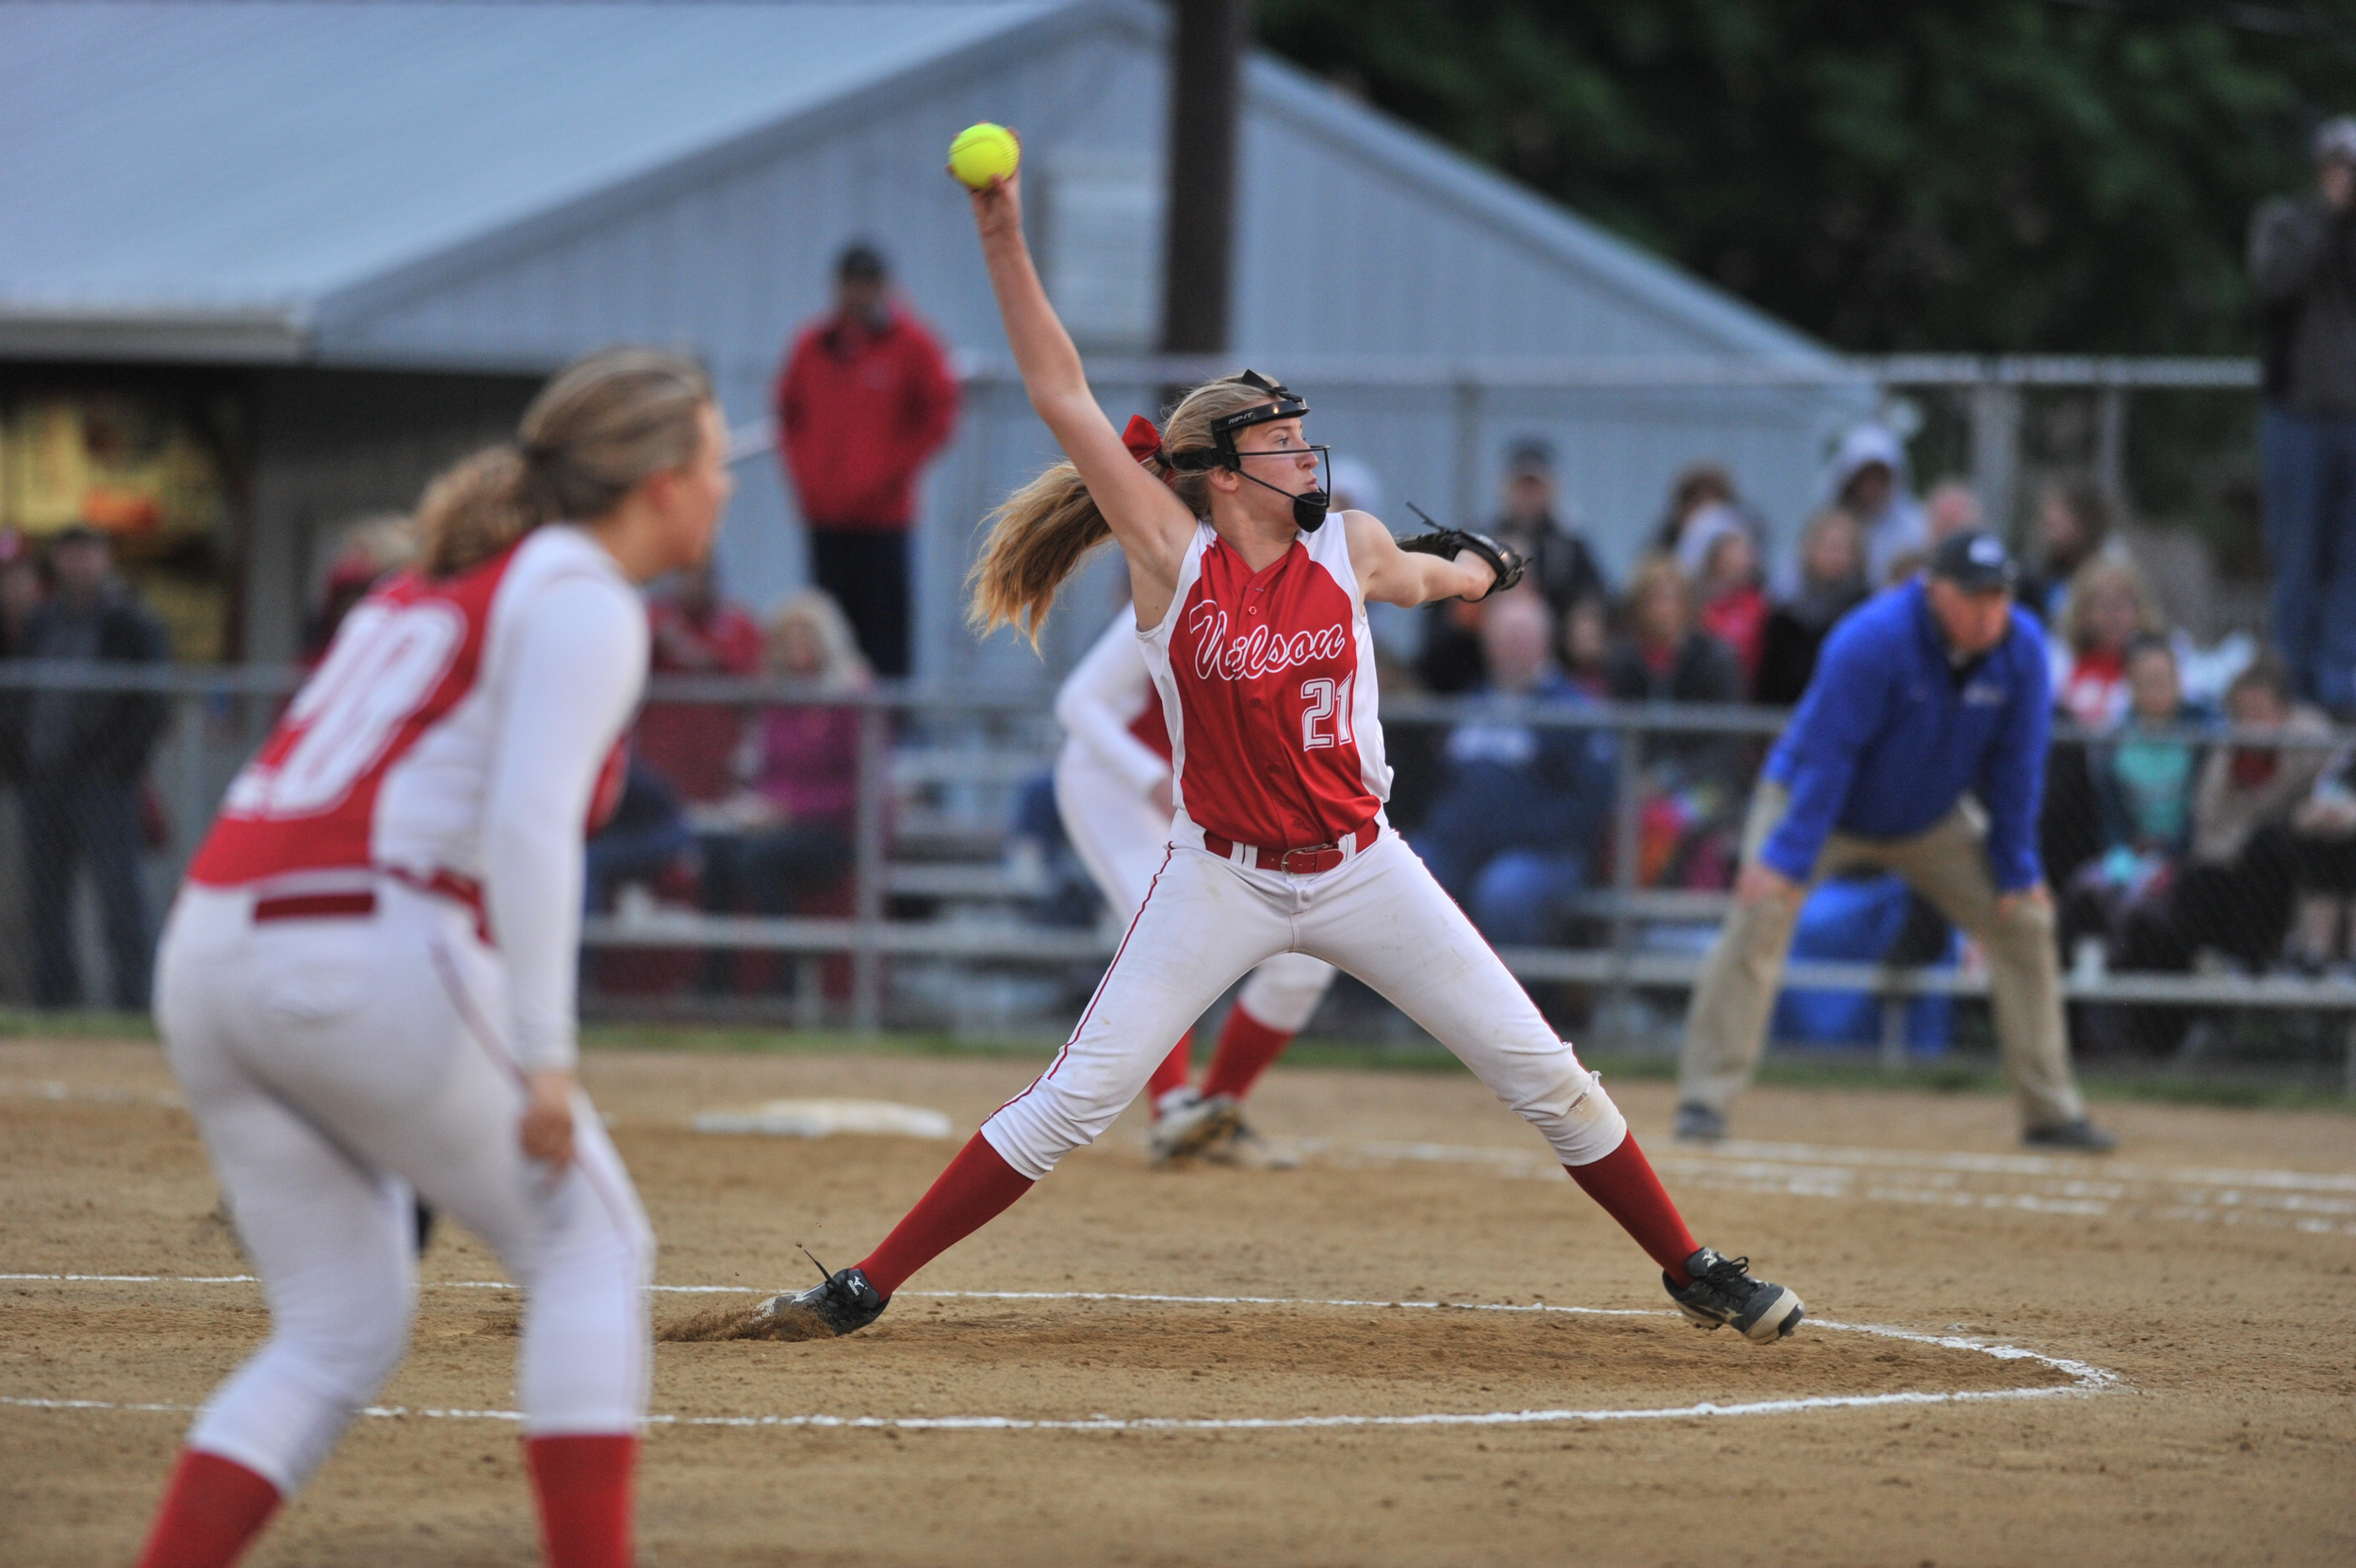 Wilson High School's Emily Love pitches the ball at the semi-final game against Exeter on May 17, 2016, at Lyons Ballfield.